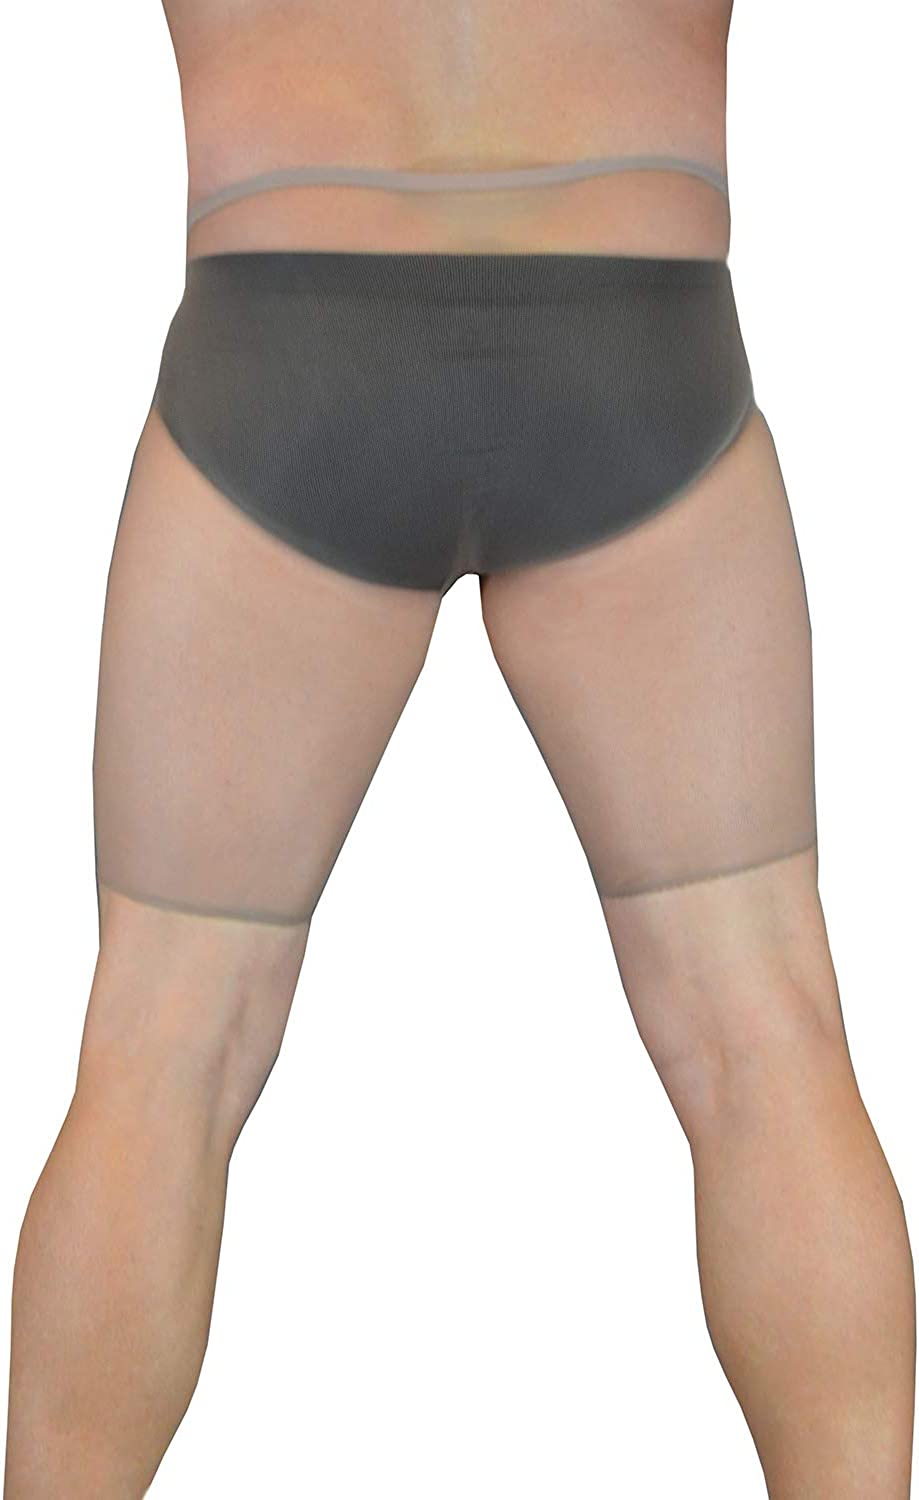 come to choose your own sports style Triton - Mens Sheer